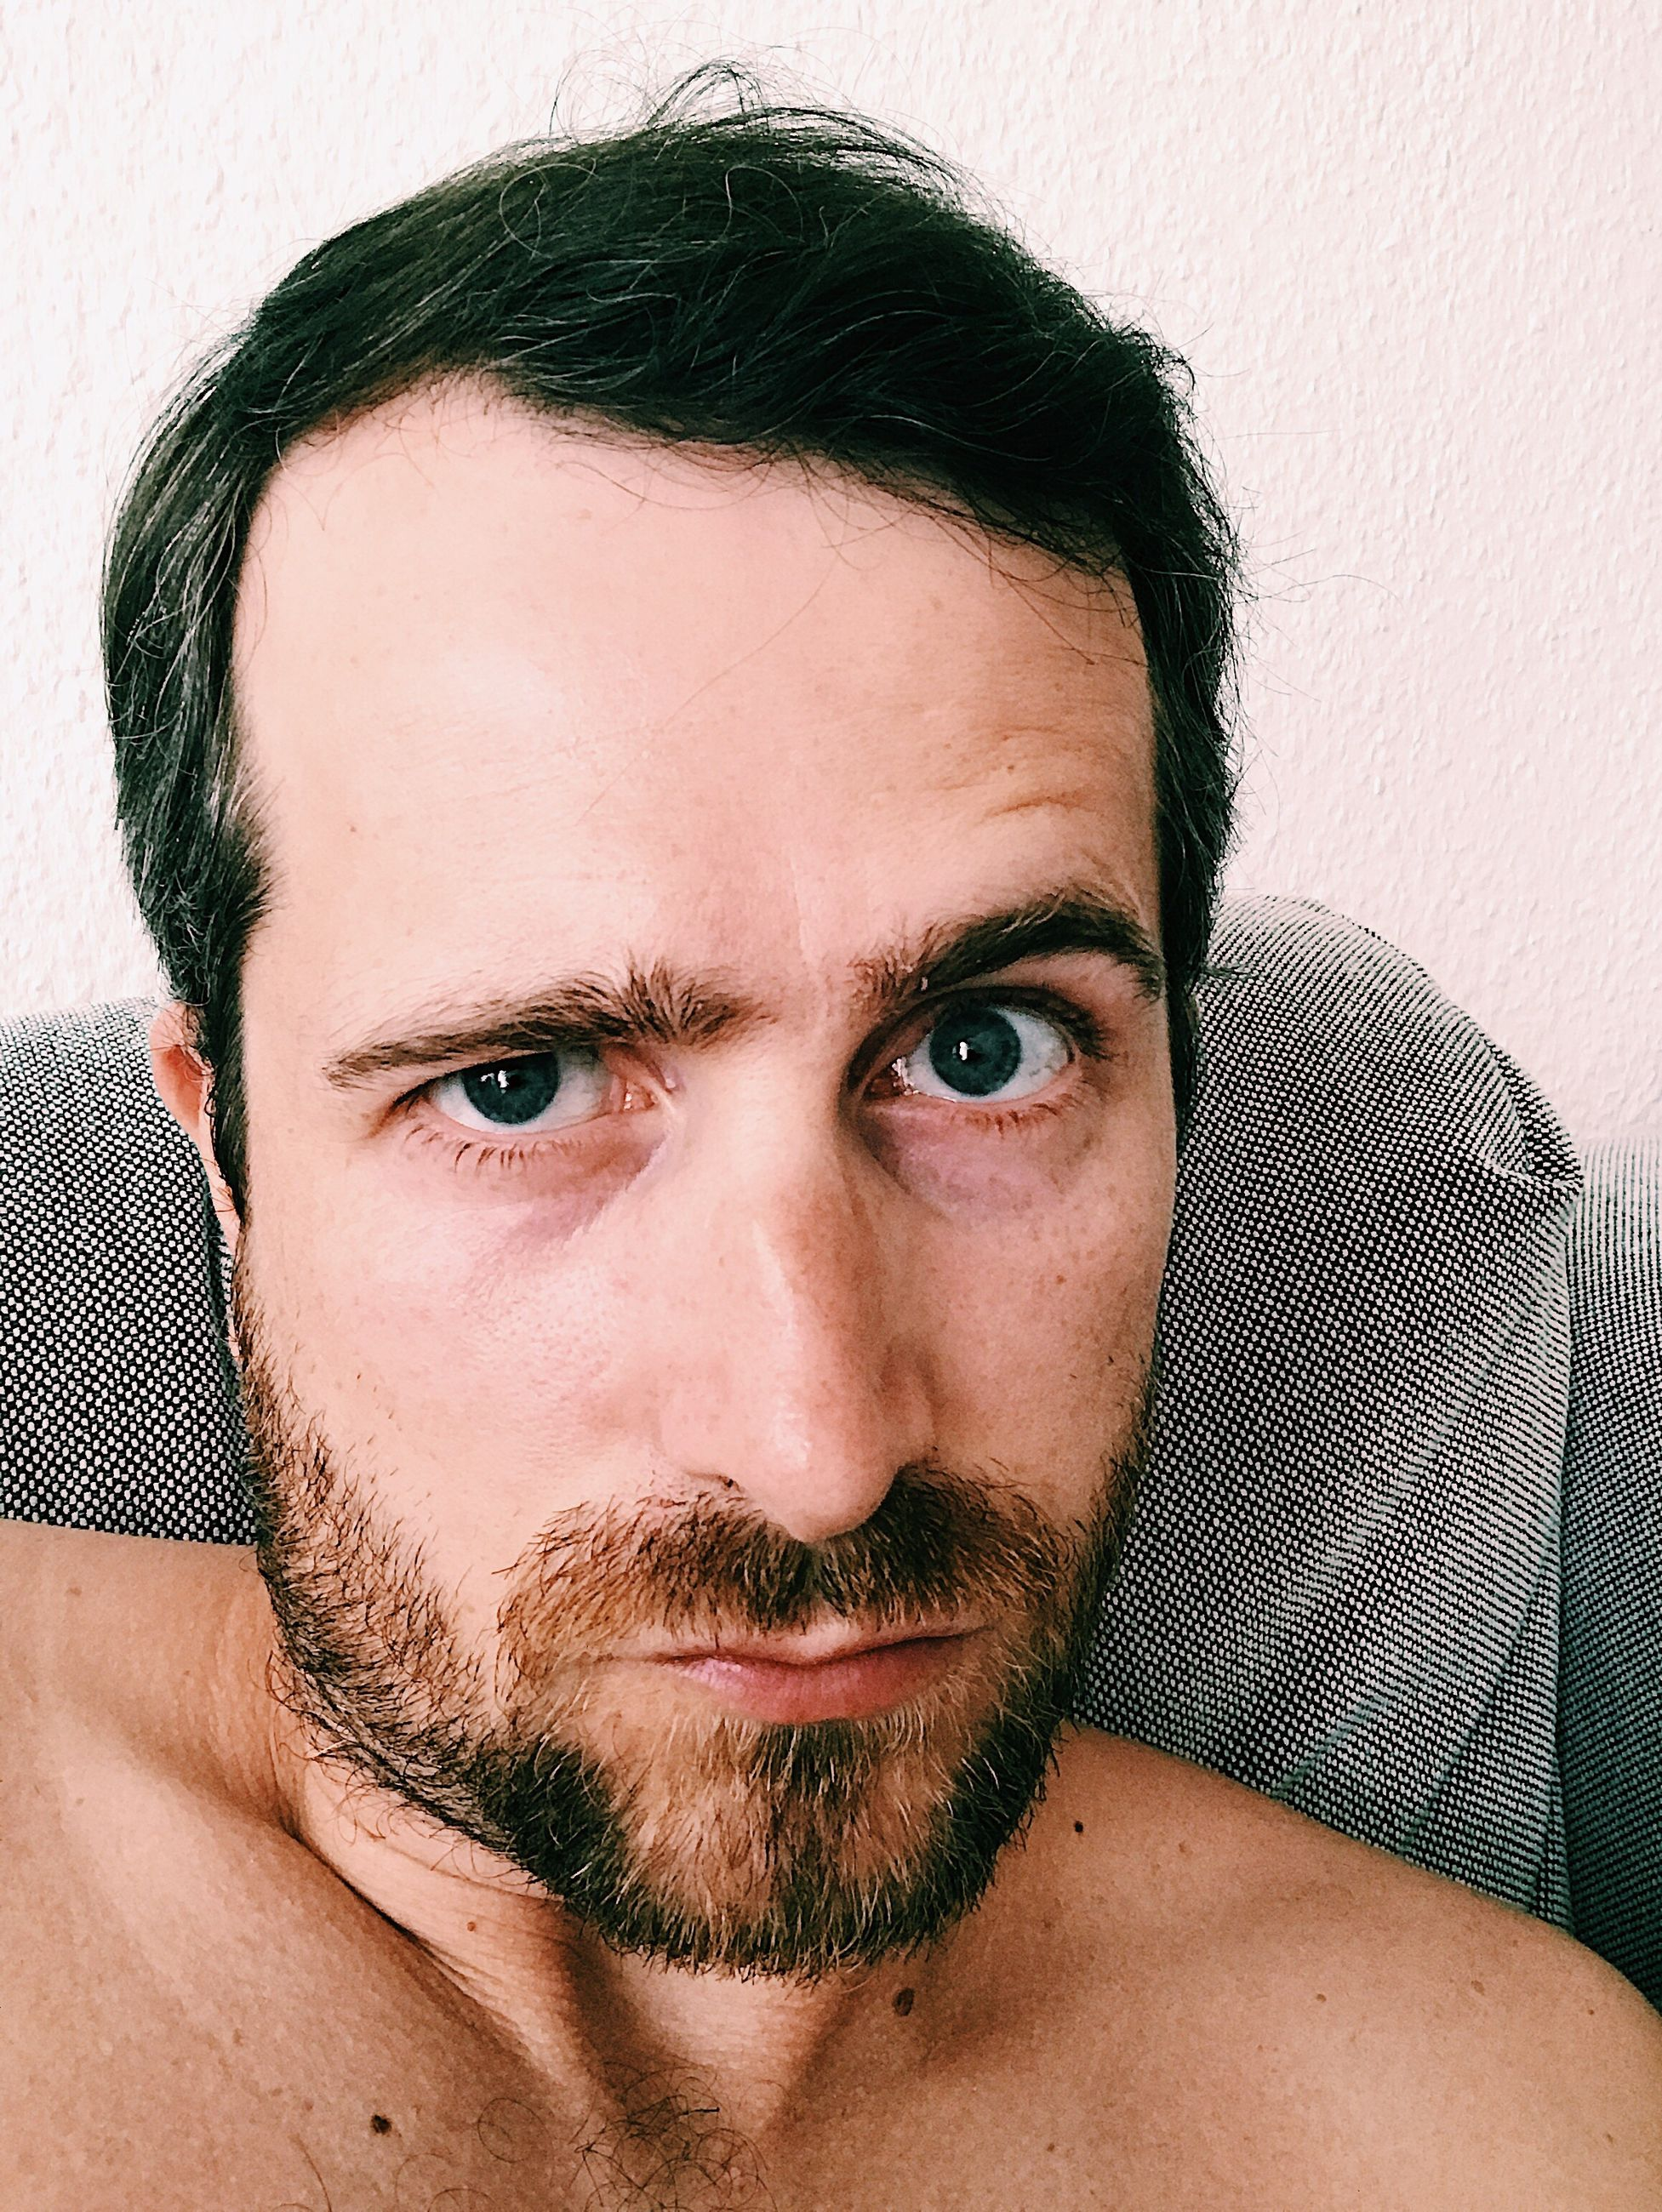 looking at camera, portrait, beard, one person, headshot, mid adult, close-up, mustache, real people, one man only, shirtless, human face, handsome, indoors, lifestyles, men, only men, adult, day, adults only, people, young adult